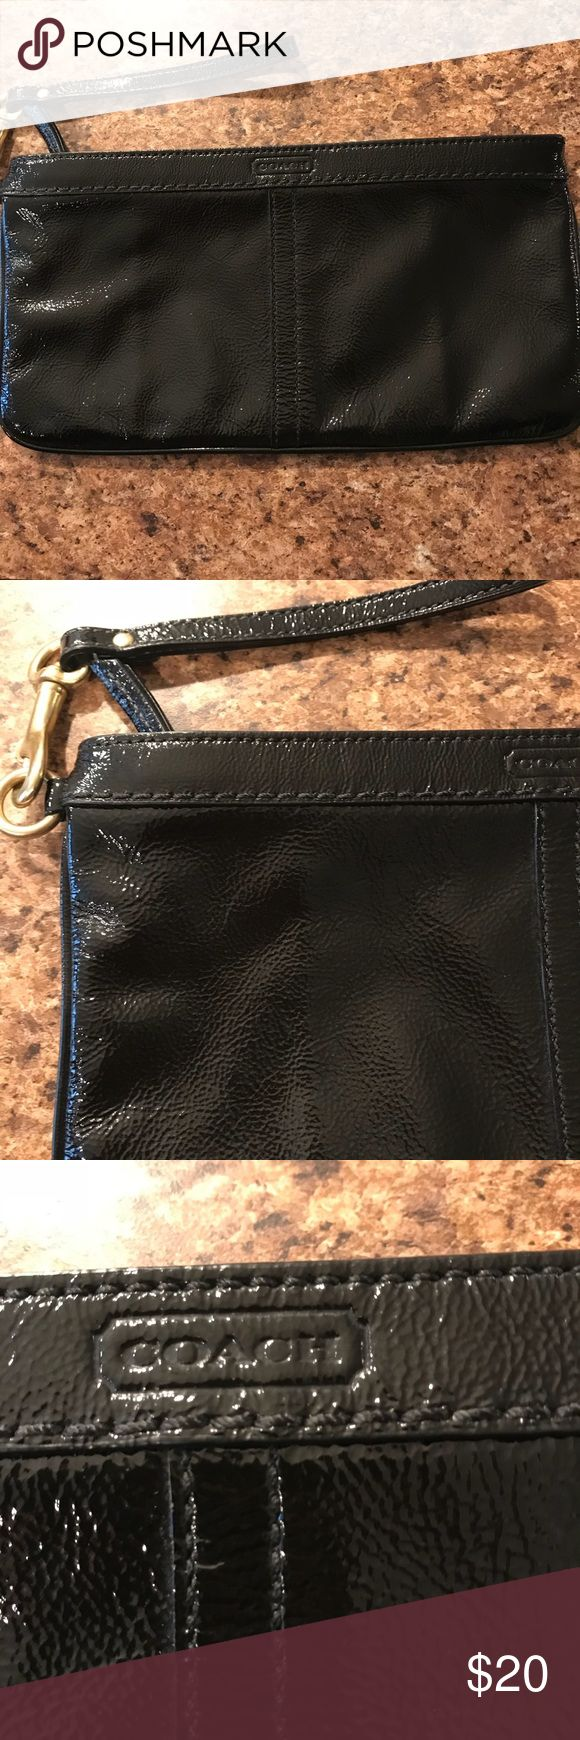 Black Coach Wristlet Excellent condition! Black Coach Wristlet. Perfect size to carry small wallet and phone for a night out! Coach Bags Clutches & Wristlets